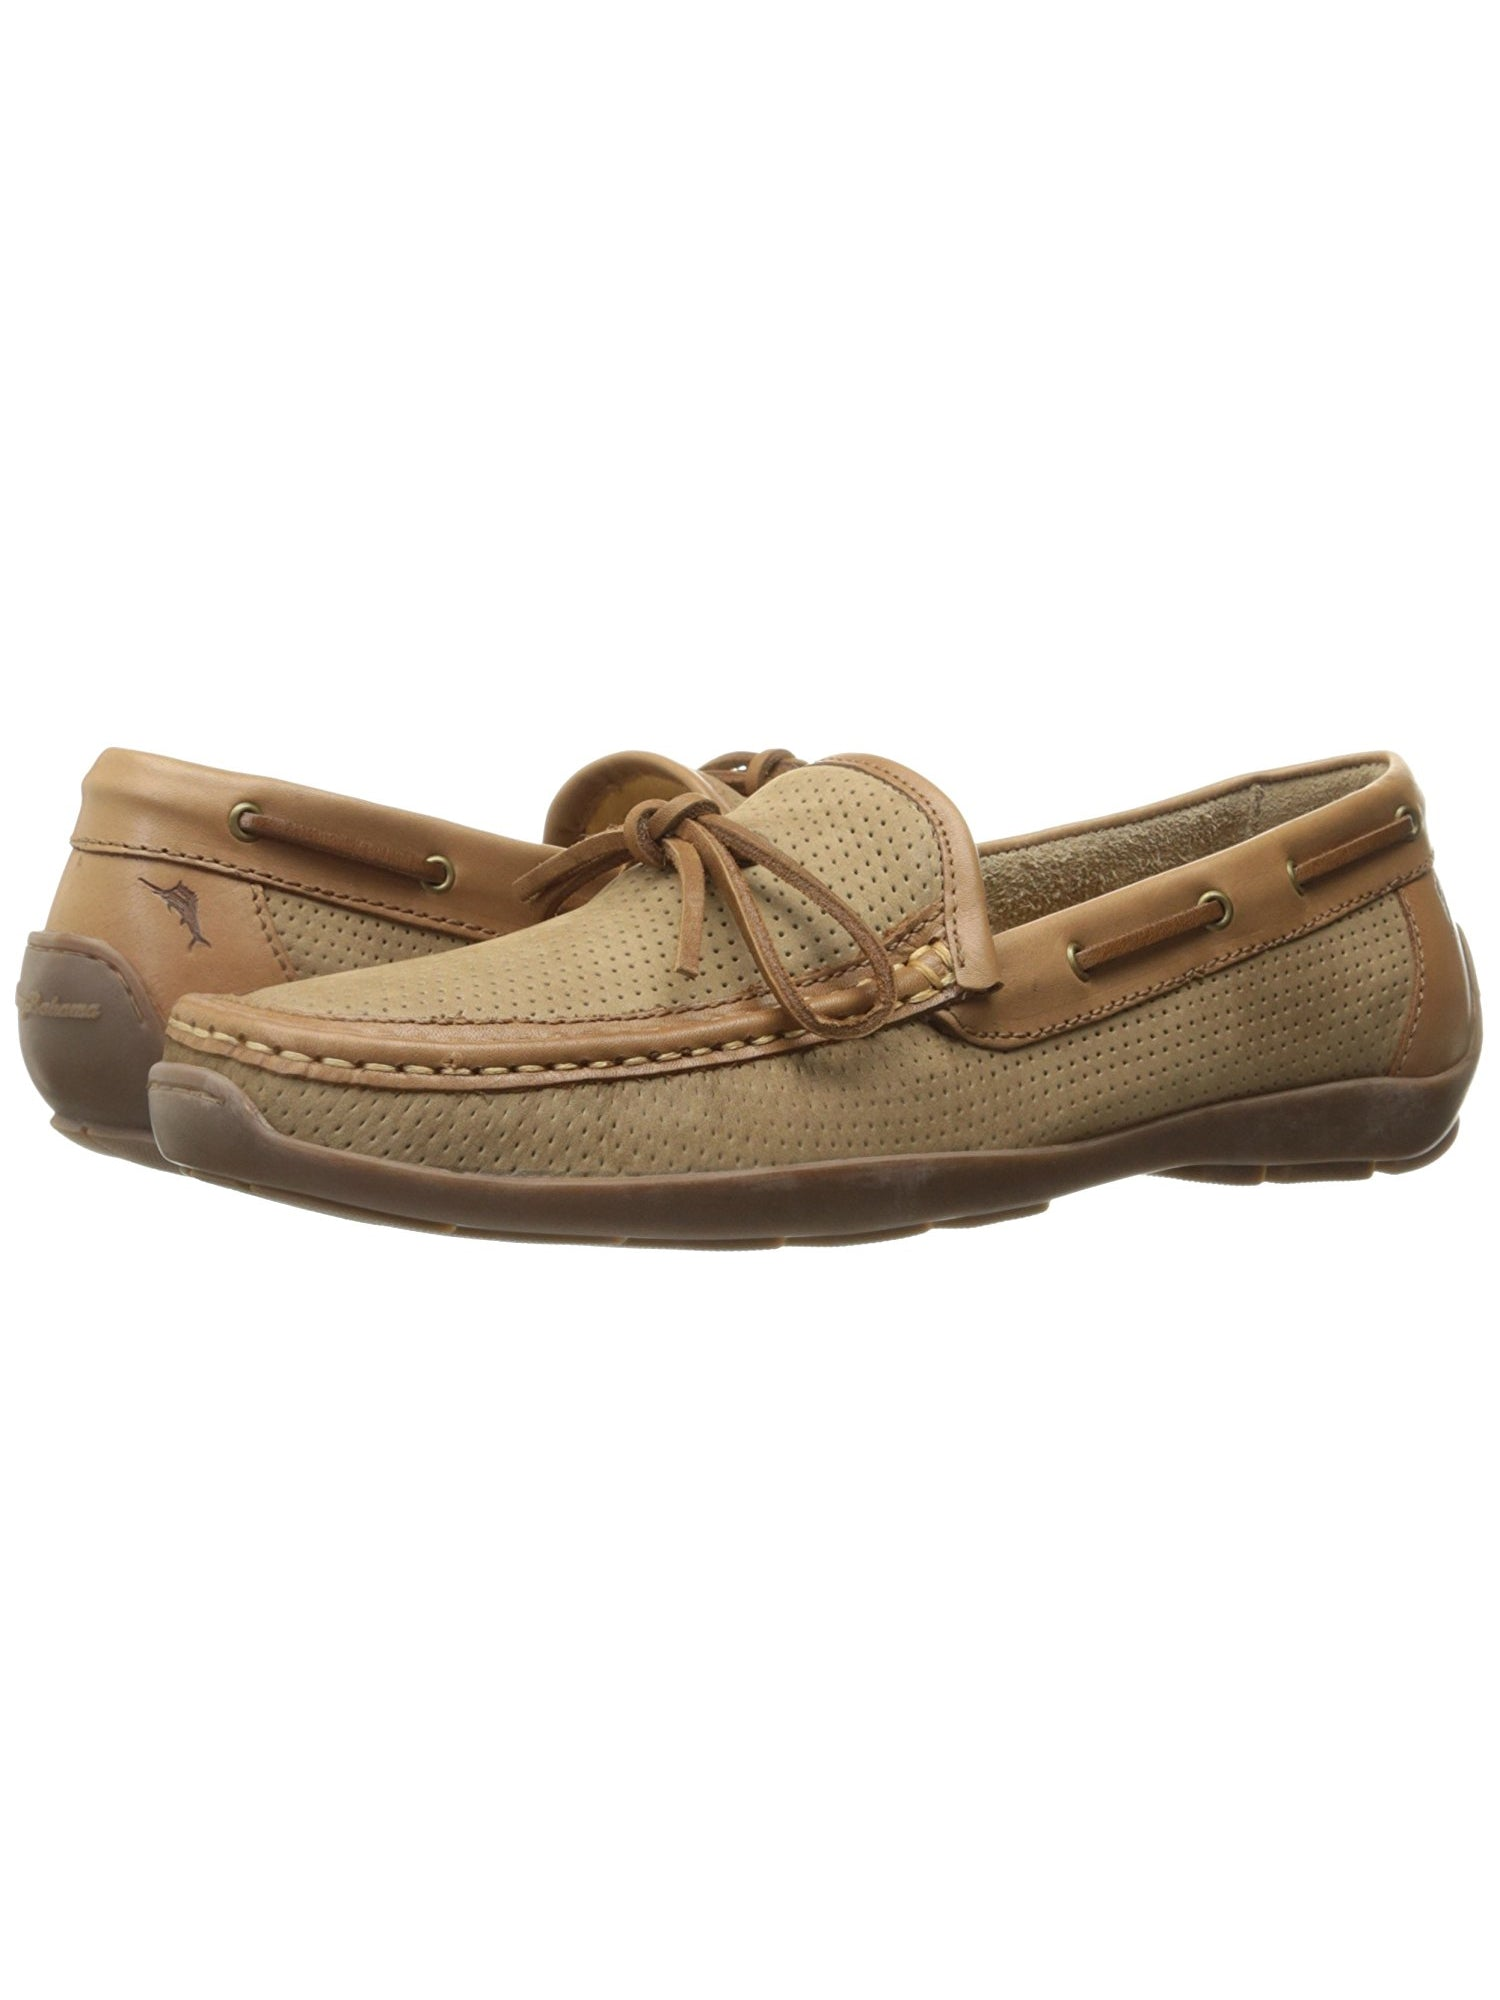 dc08243d8e6a Tommy Bahama Men s Odinn Wide Width Slip-on Moccasin Boat Shoe ...